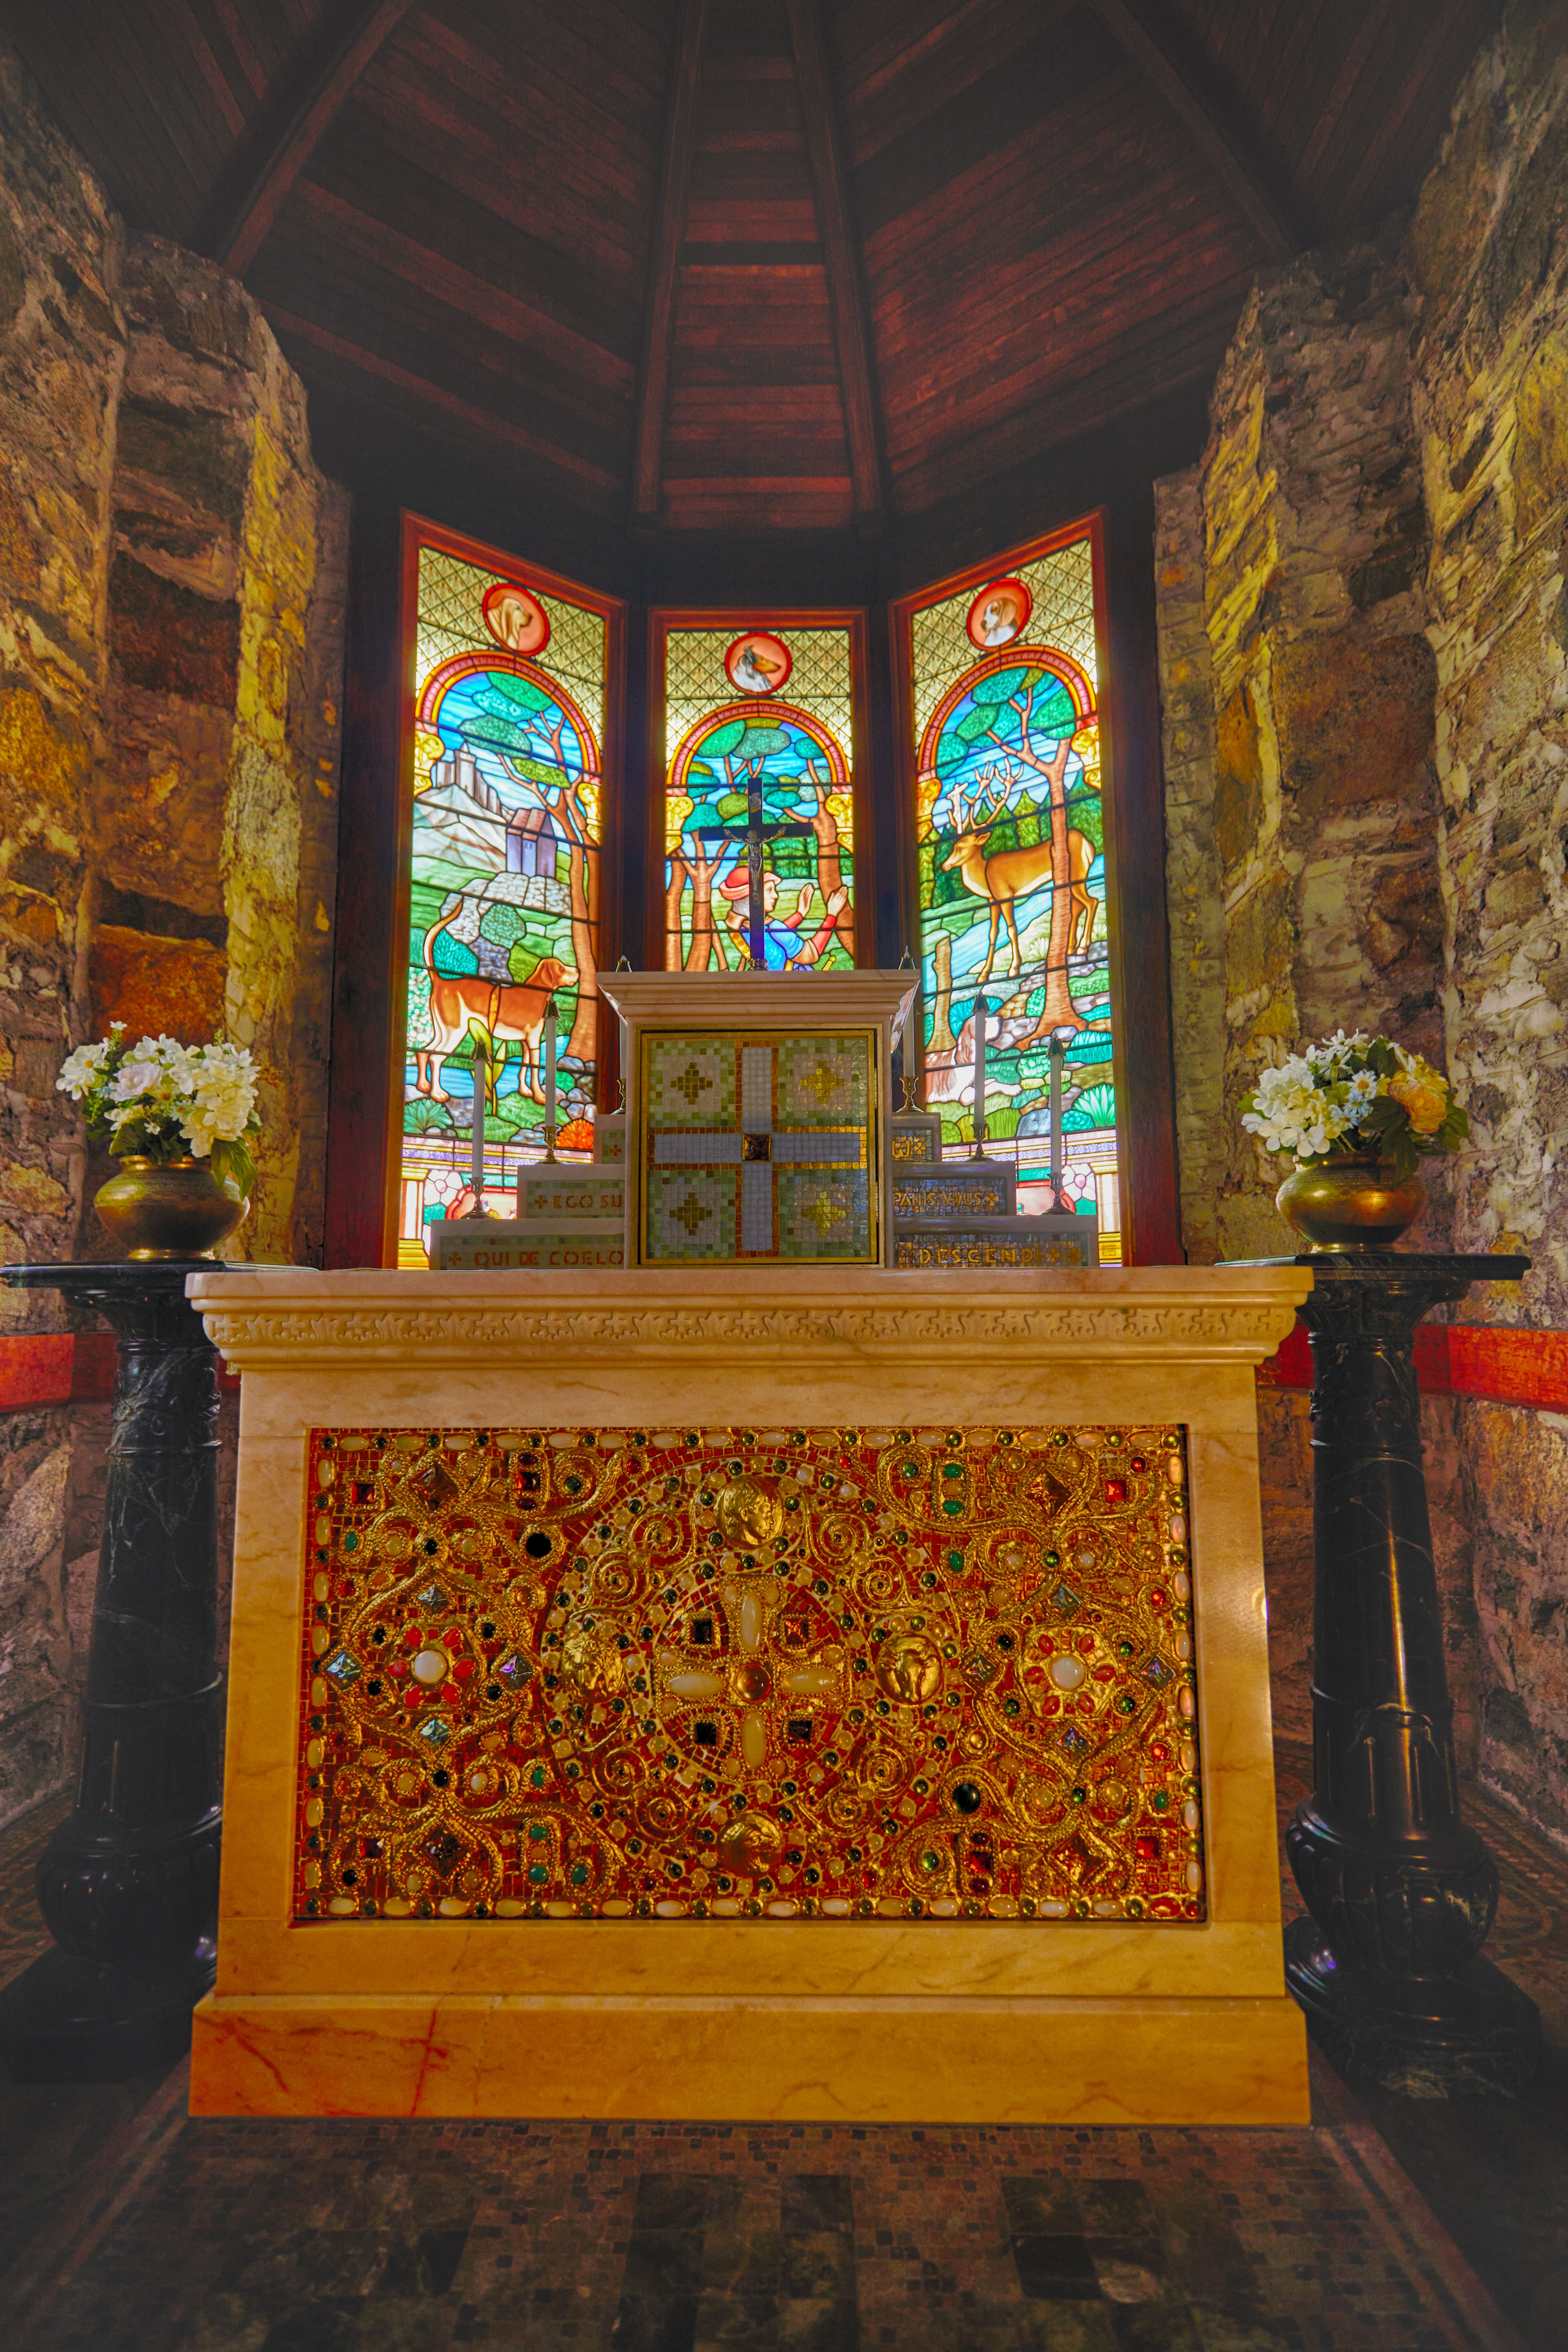 Altar and stained glass windows.